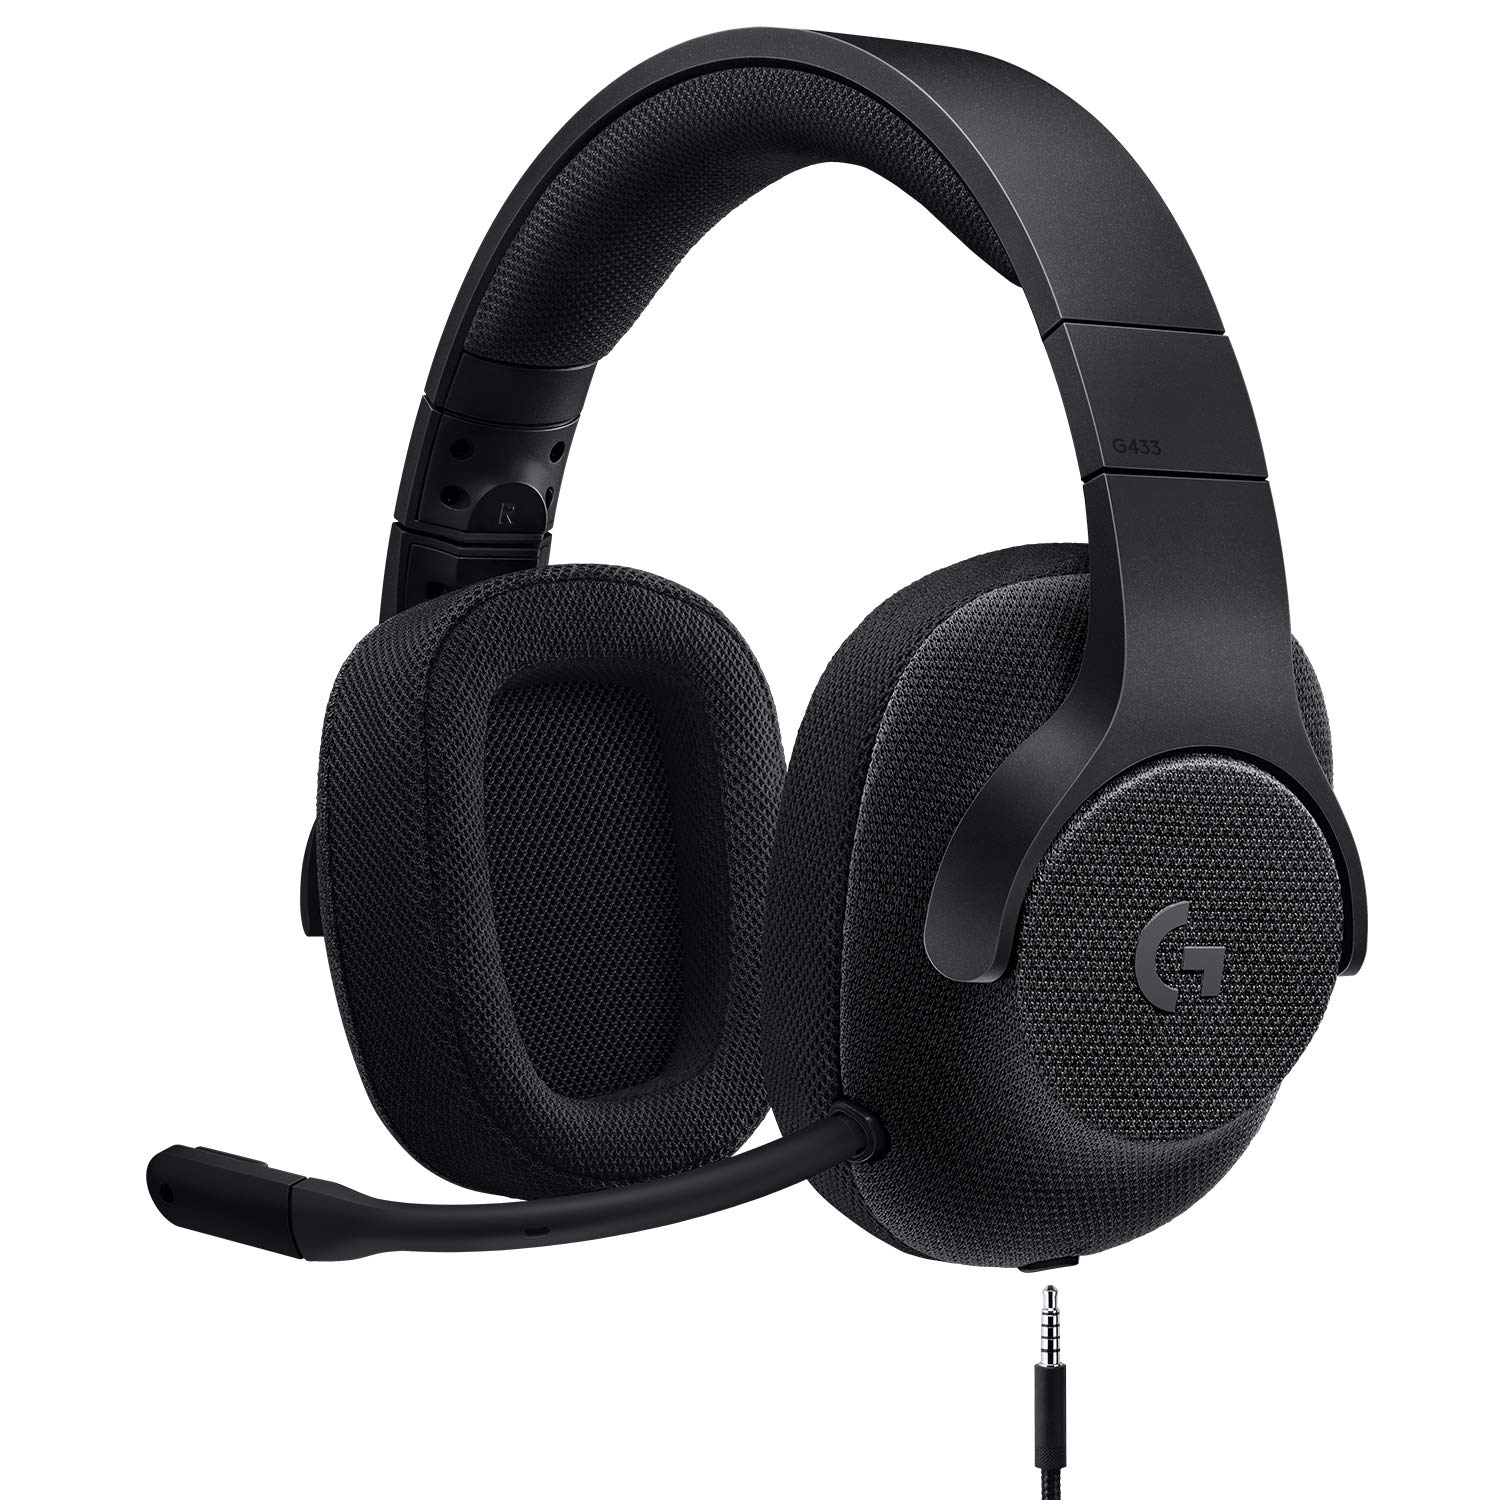 Logitech G433 7.1 Surround Sound Gaming Headset (Black) for